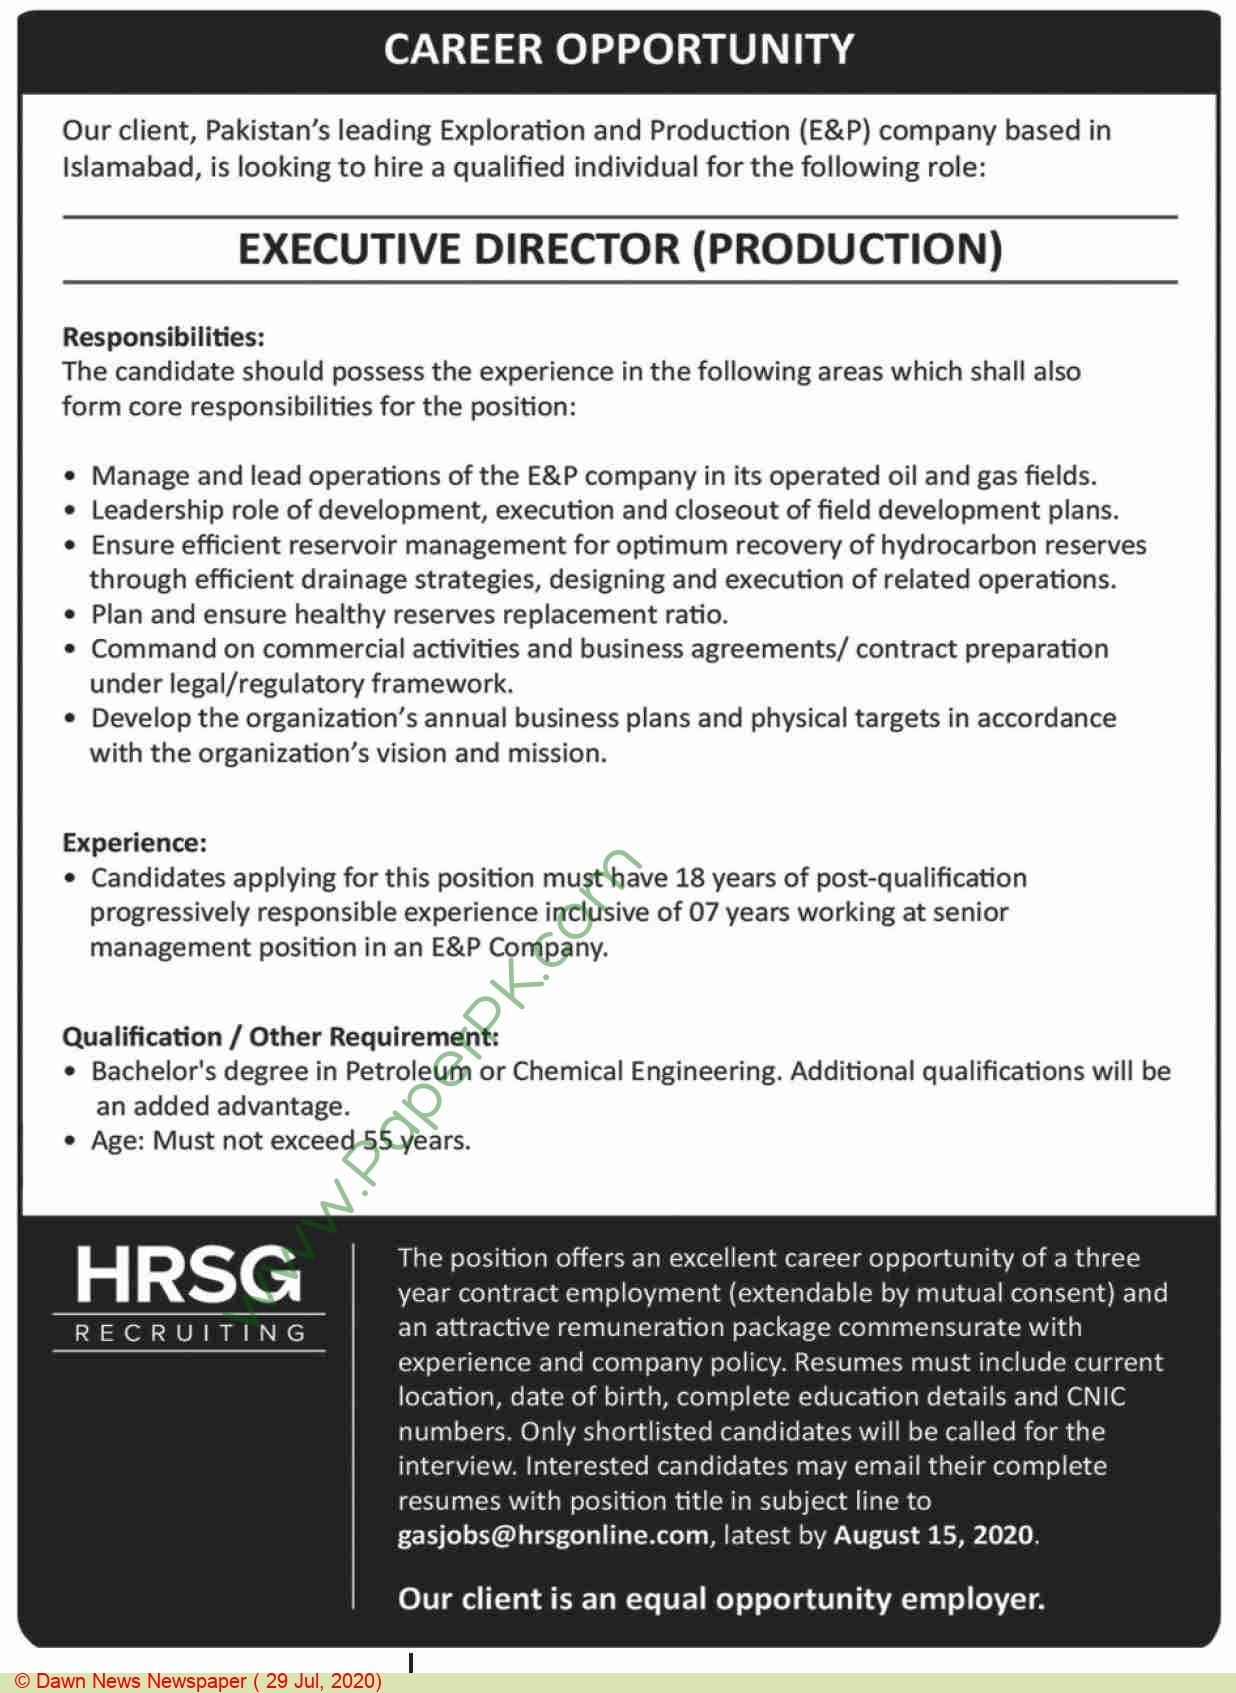 Hrsg Recruiting jobs newspaper ad for Executive Director Production in Islamabad